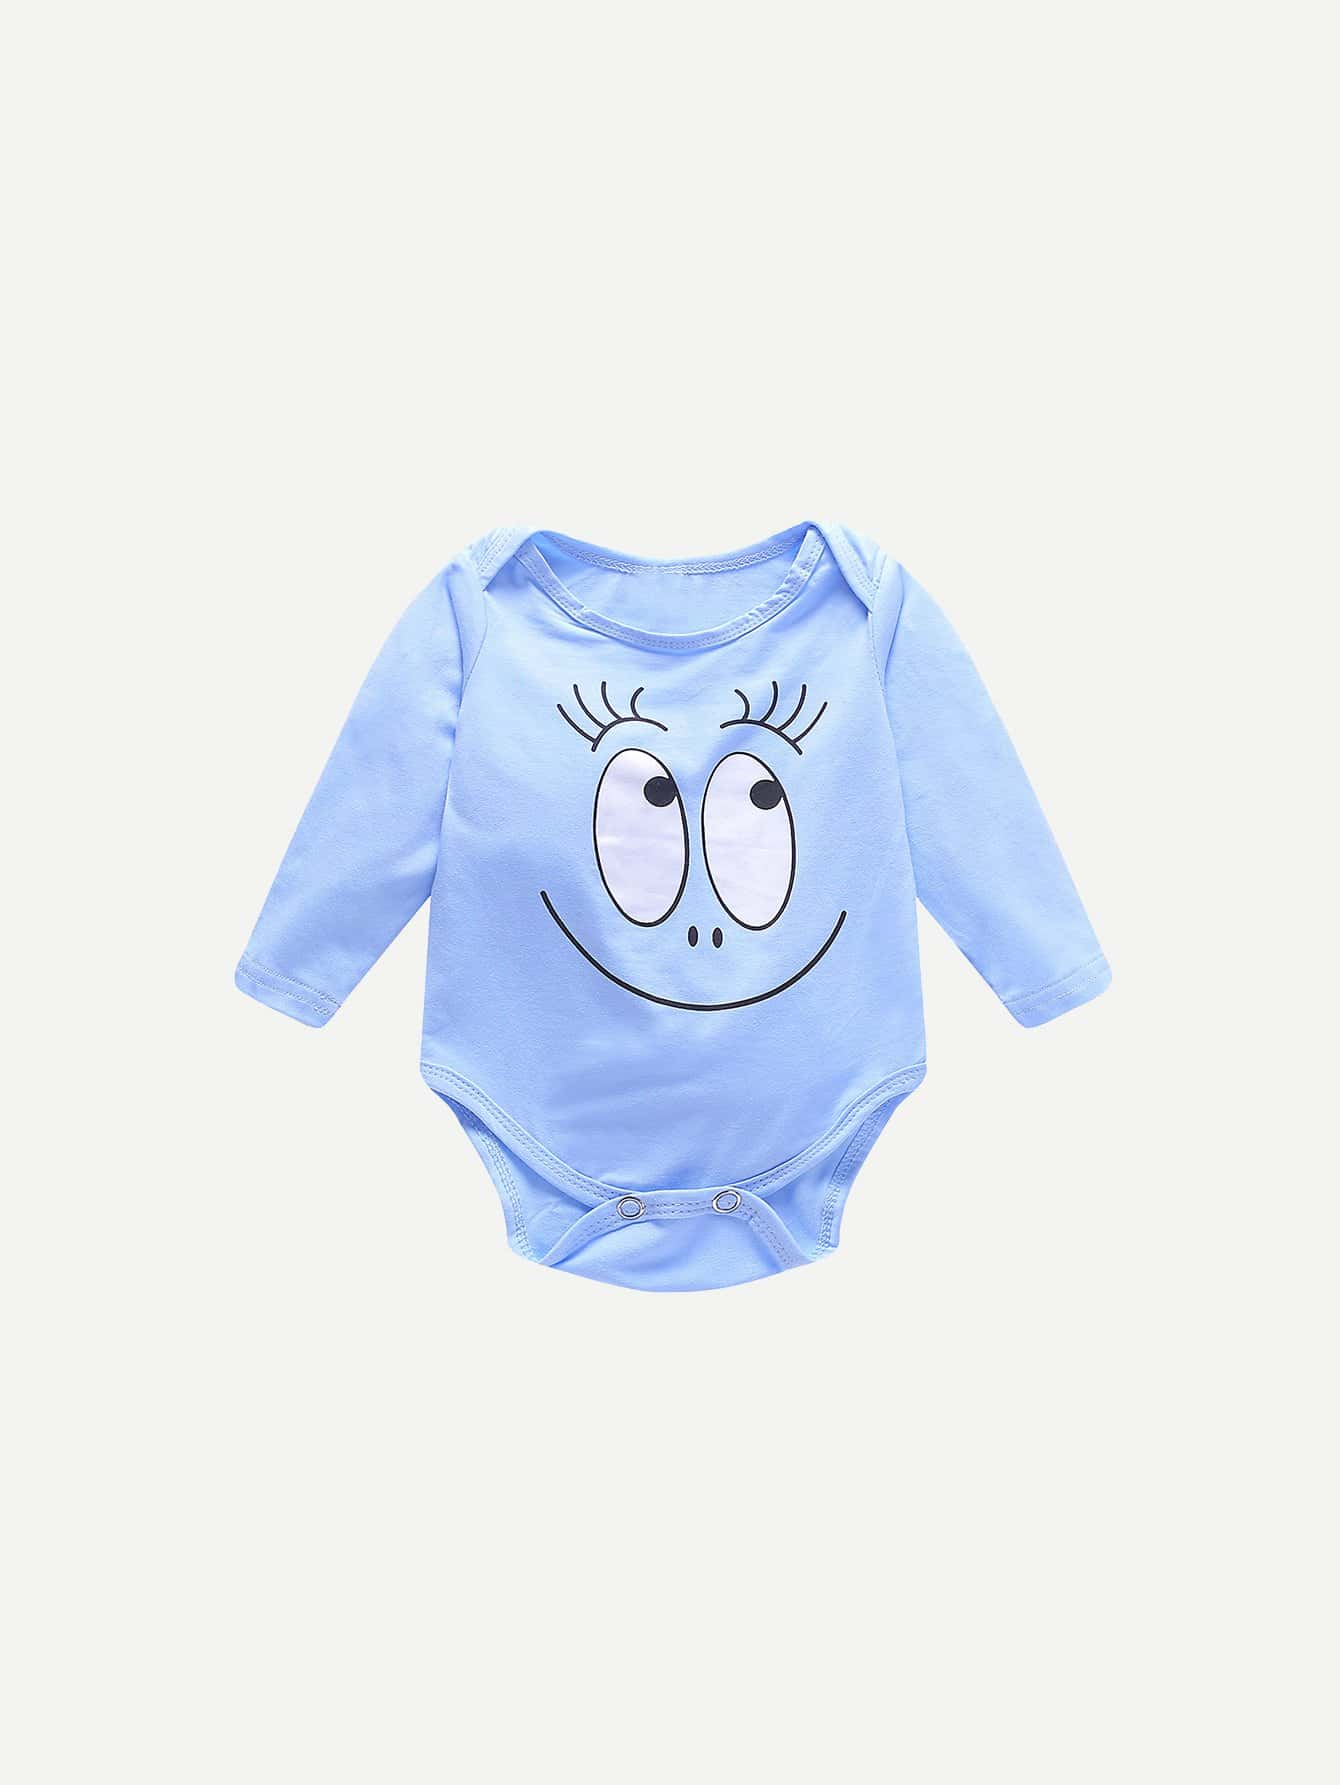 Baby Cartoon Eye Print Romper With Hat